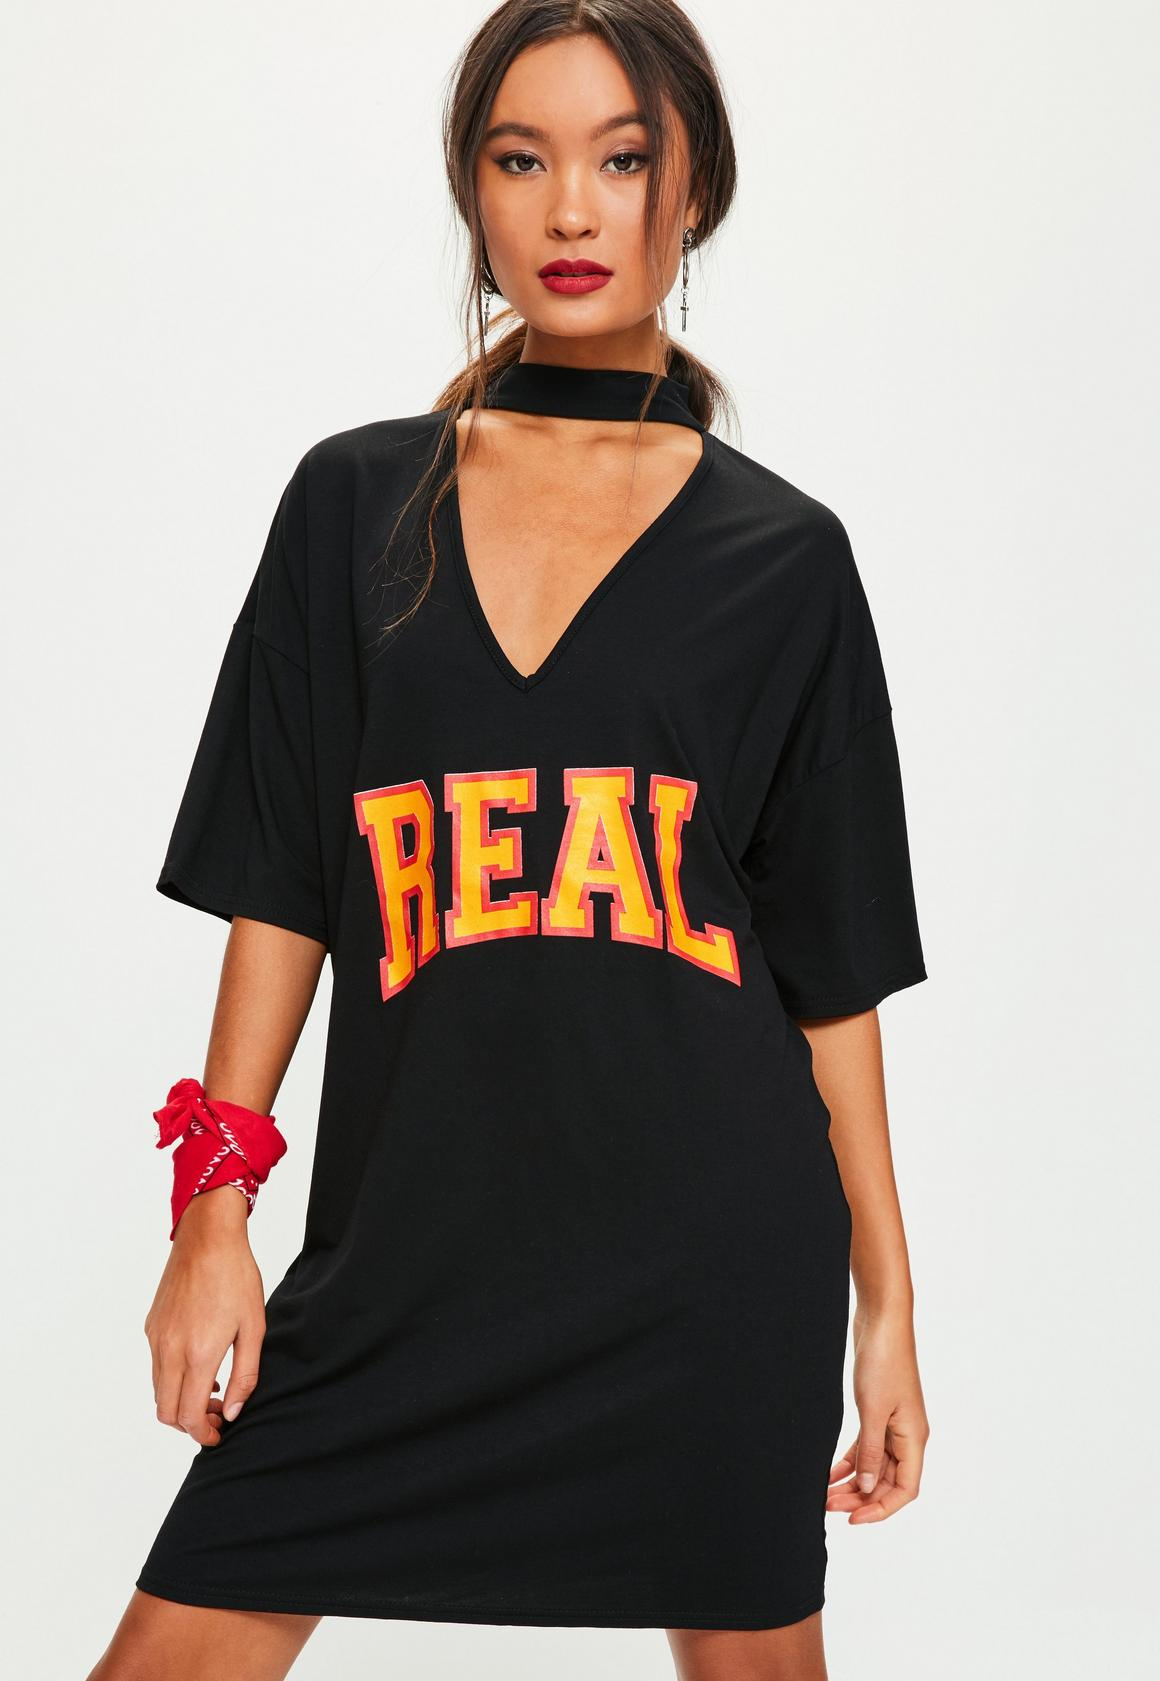 Black Slogan Graphic Print Choker Neck T-Shirt Dress | Missguided